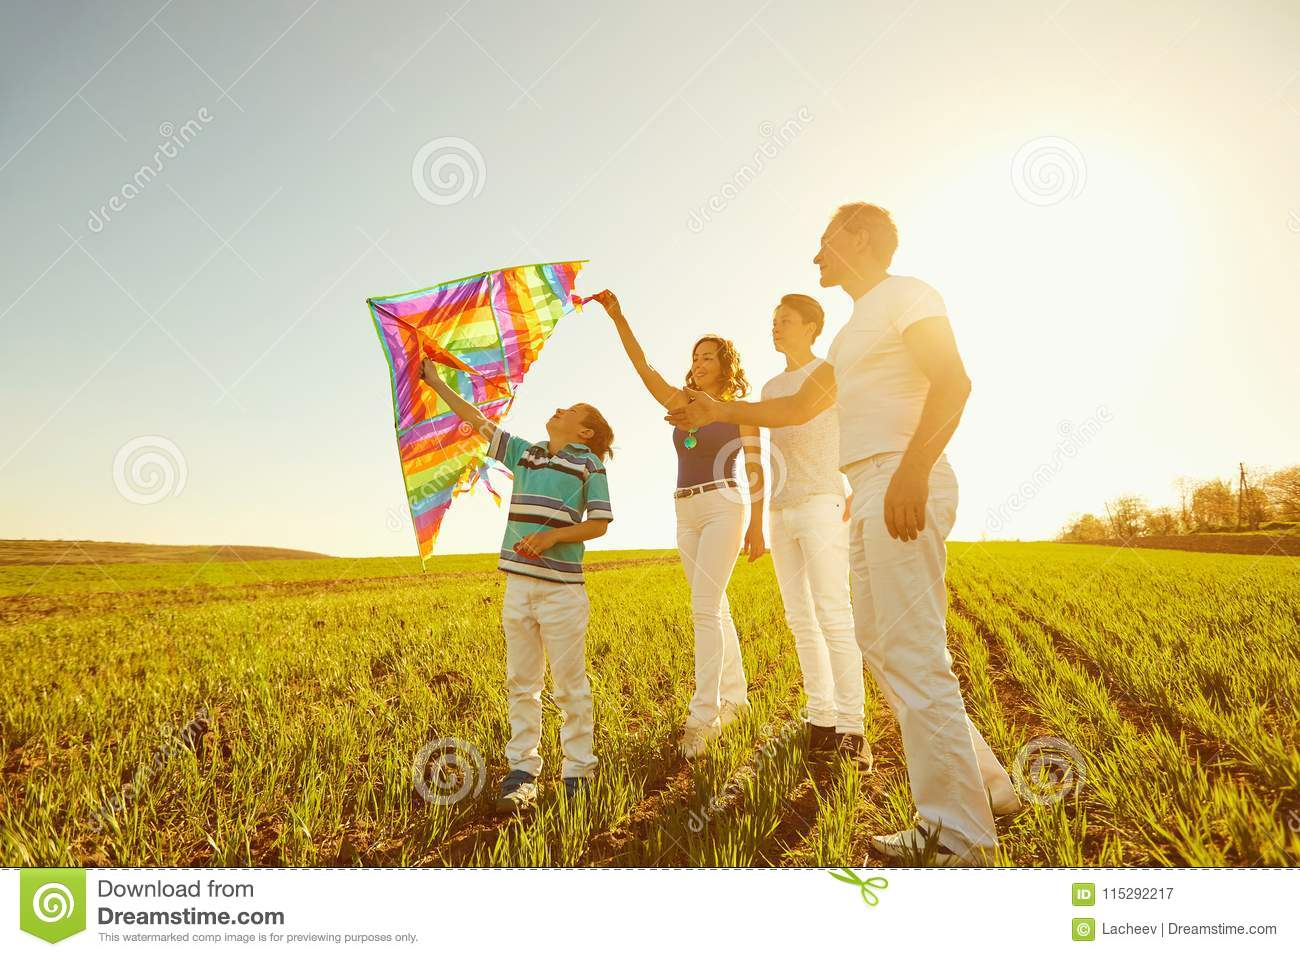 Happy family playing with a kite on nature in spring, summer.